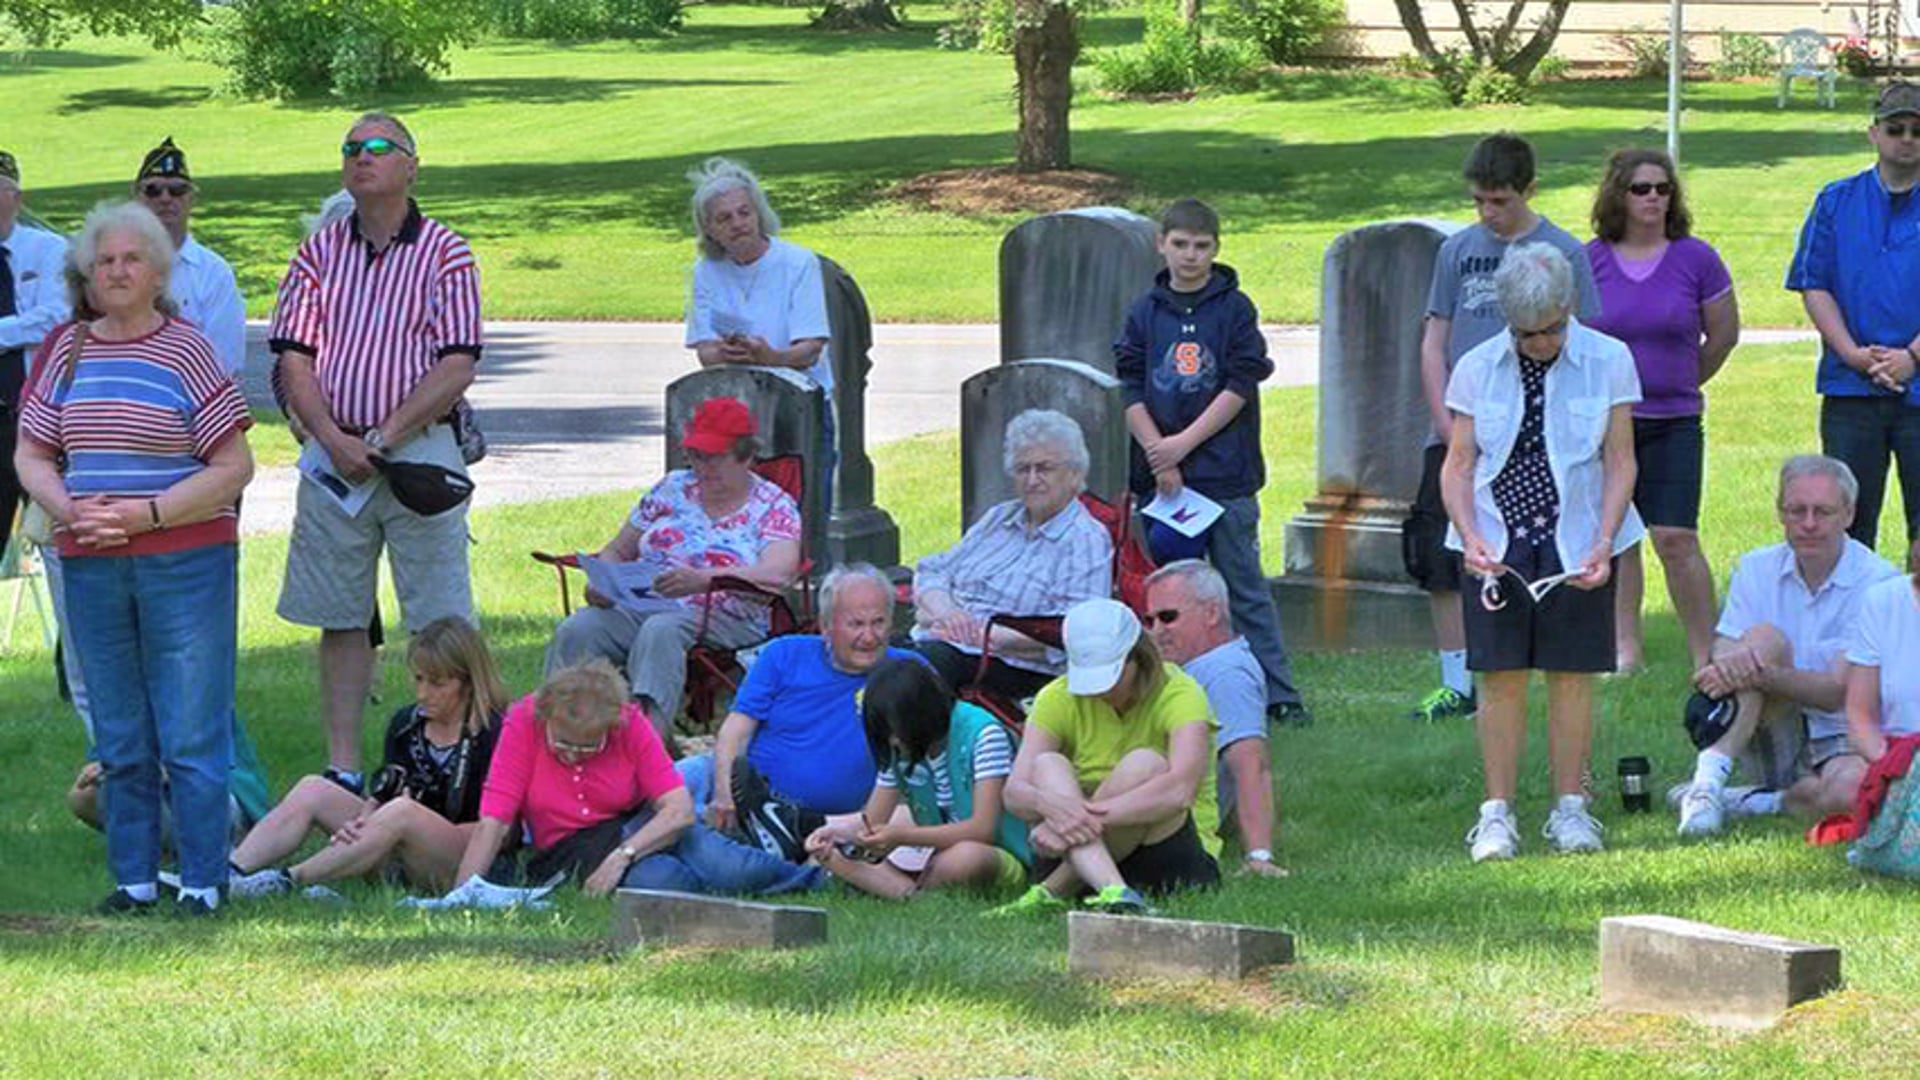 Jacob Stull Galentine 2014 Monument dedication at Rush Cemetery on memorial day 2014